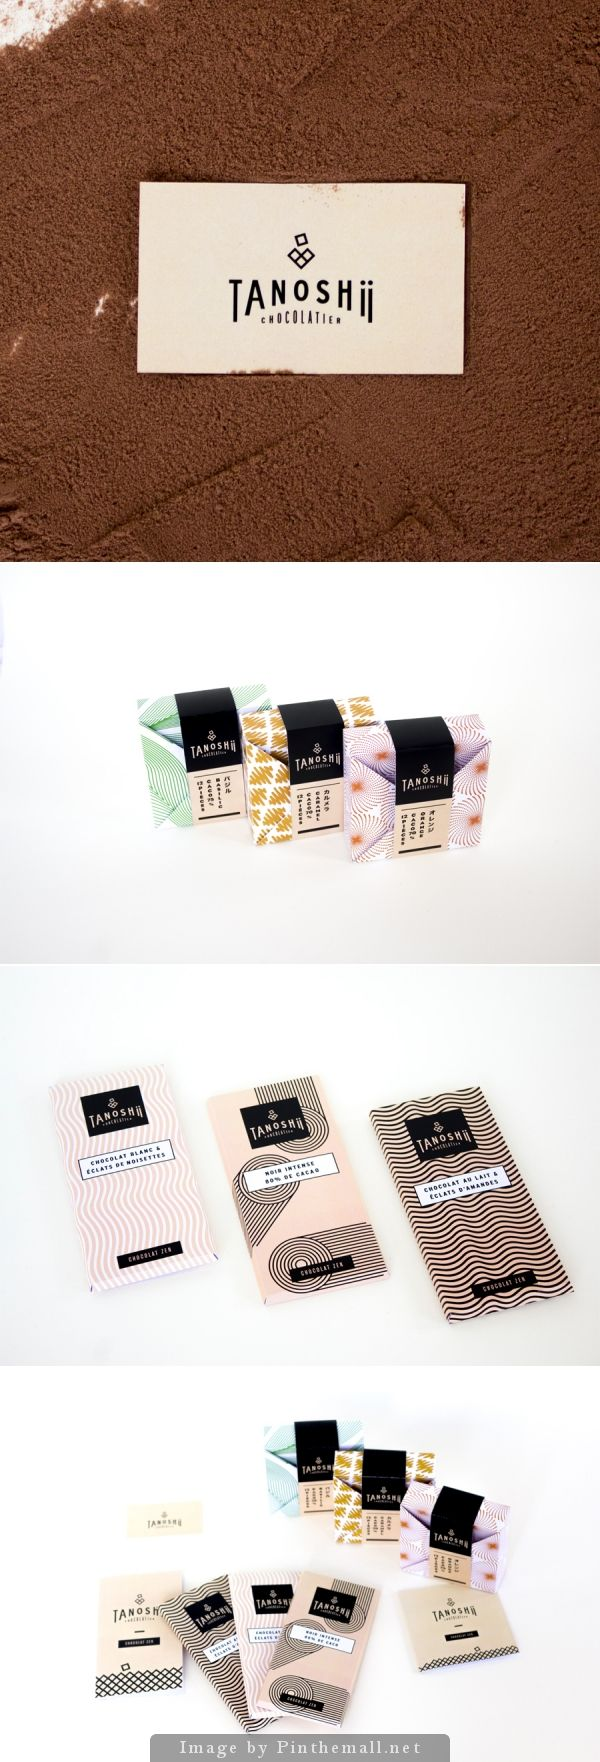 Tanoshii Chocolate (student project) great packaging PD